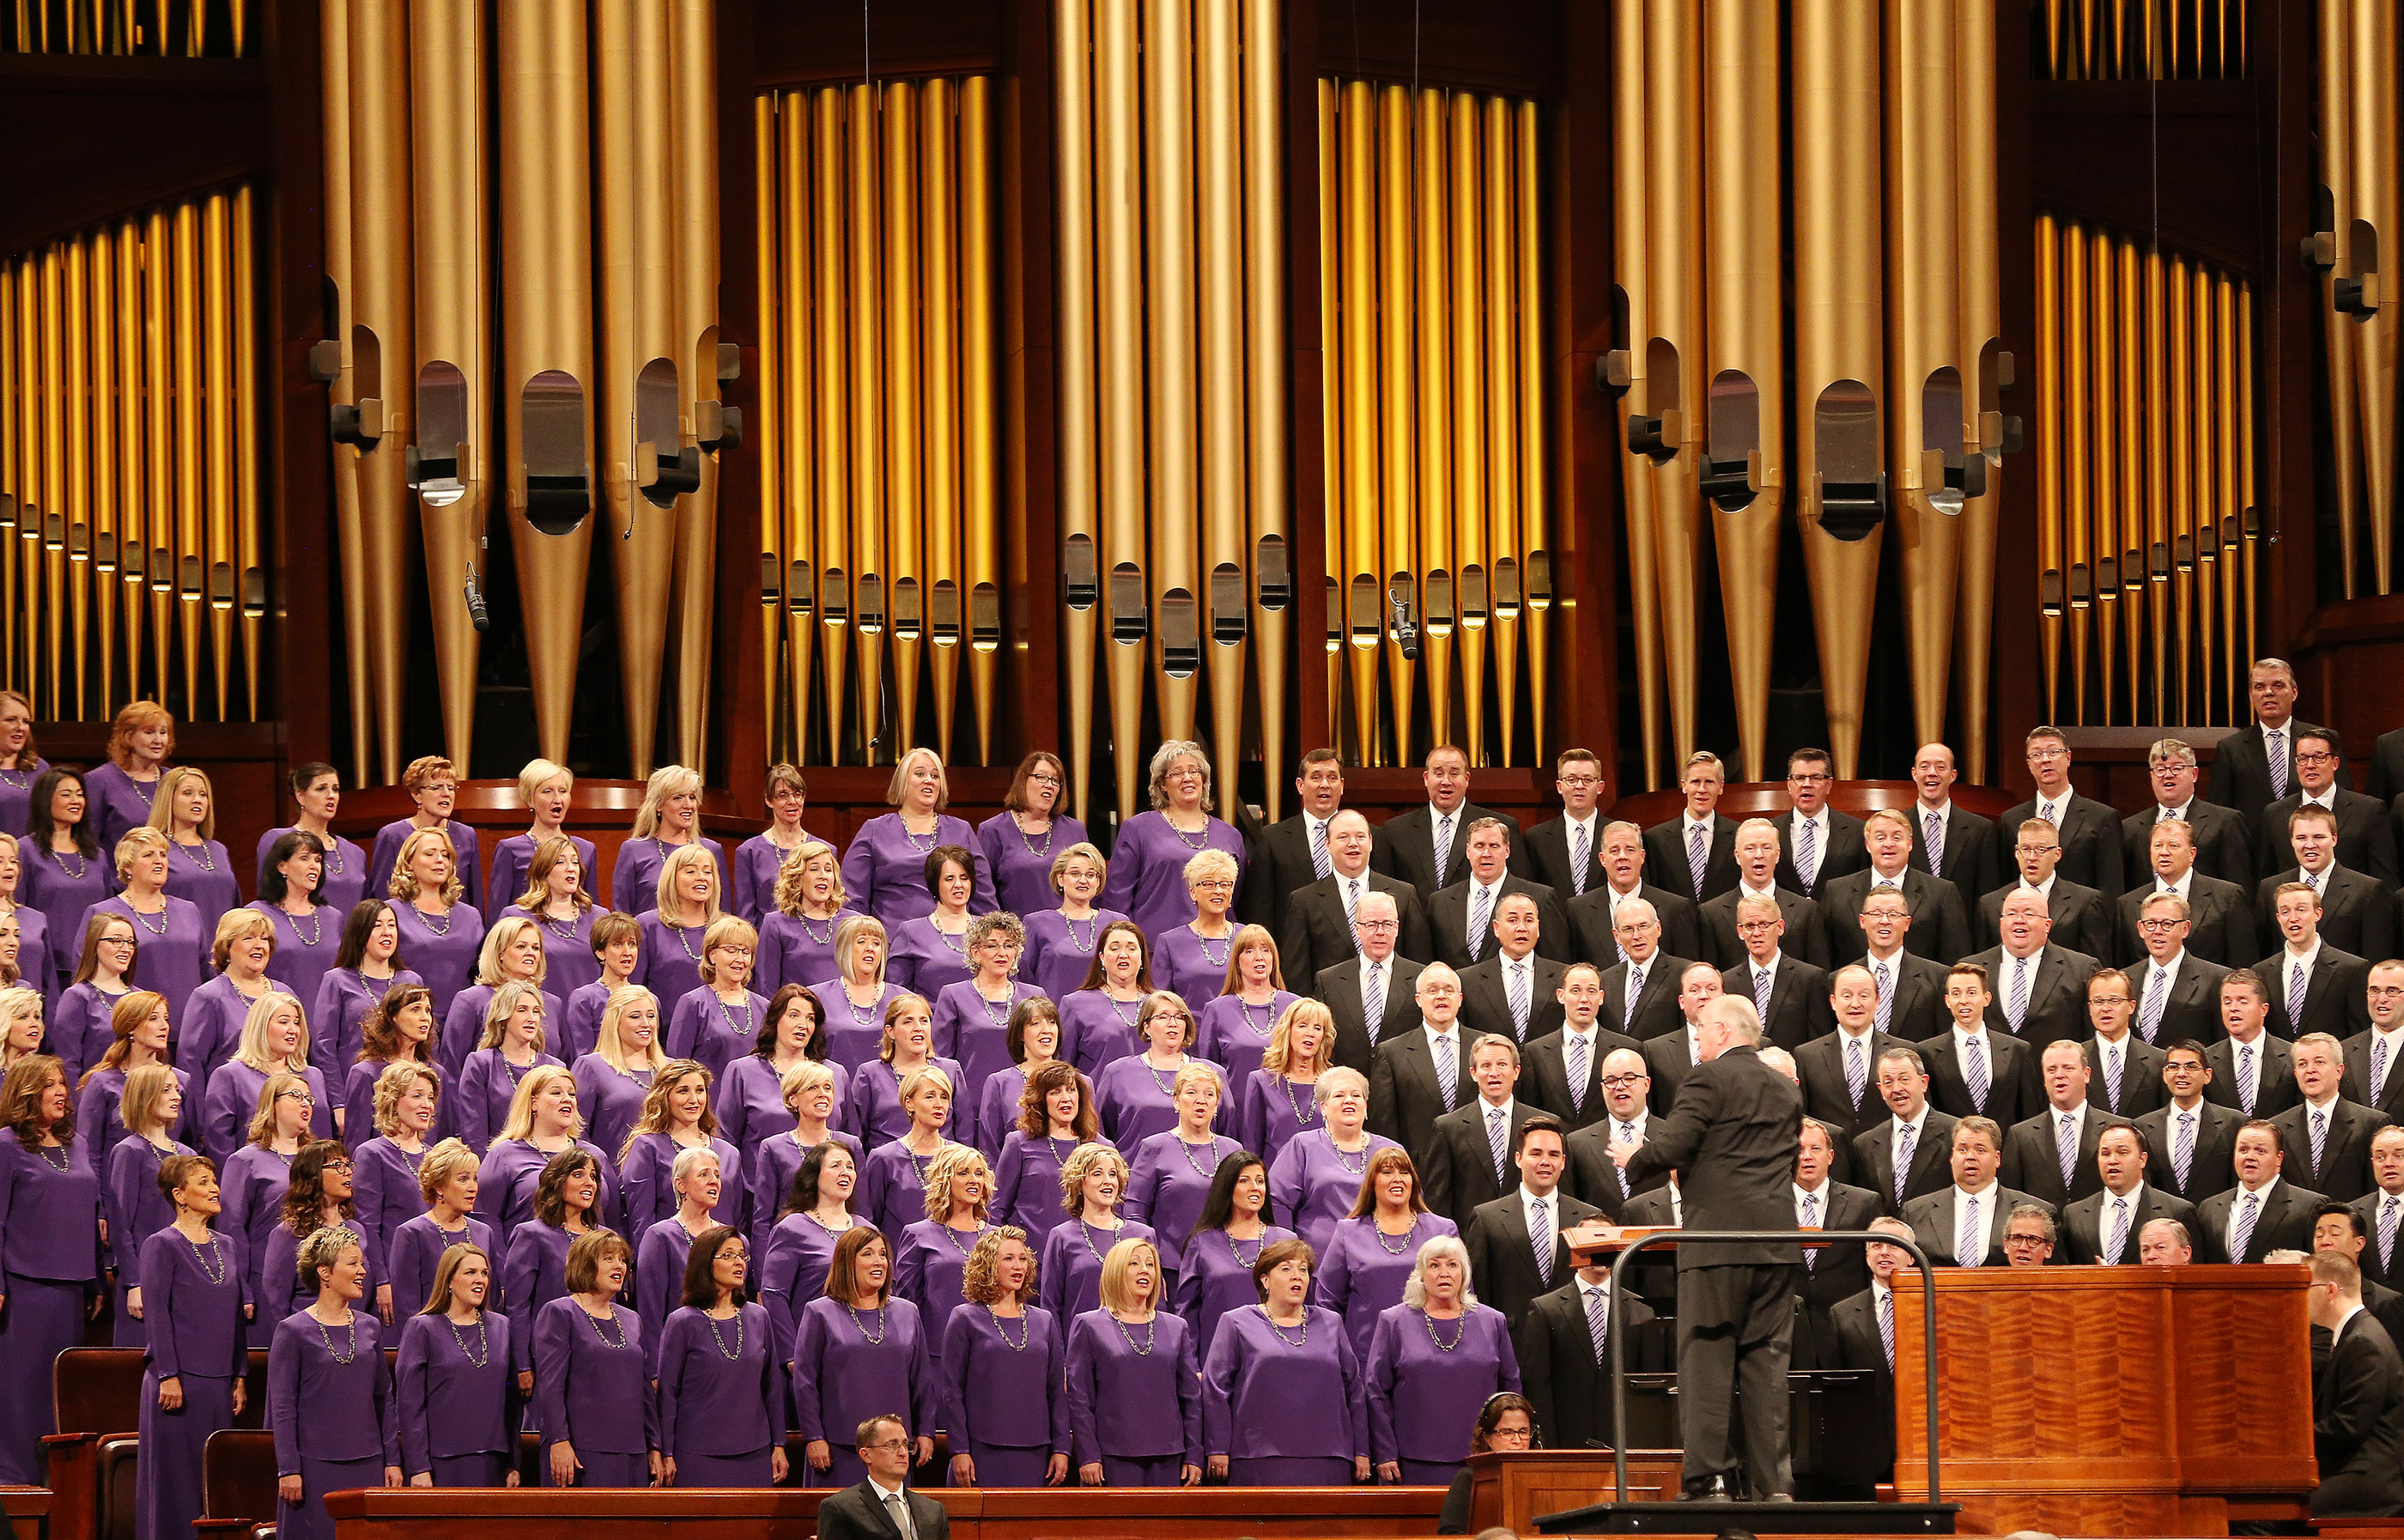 The Tabernacle Choir at Temple Square sings during the 188th Semiannual General Conference of The Church of Jesus Christ of Latter-day Saints in the Conference Center in Salt Lake City on Saturday, Oct. 6, 2018.